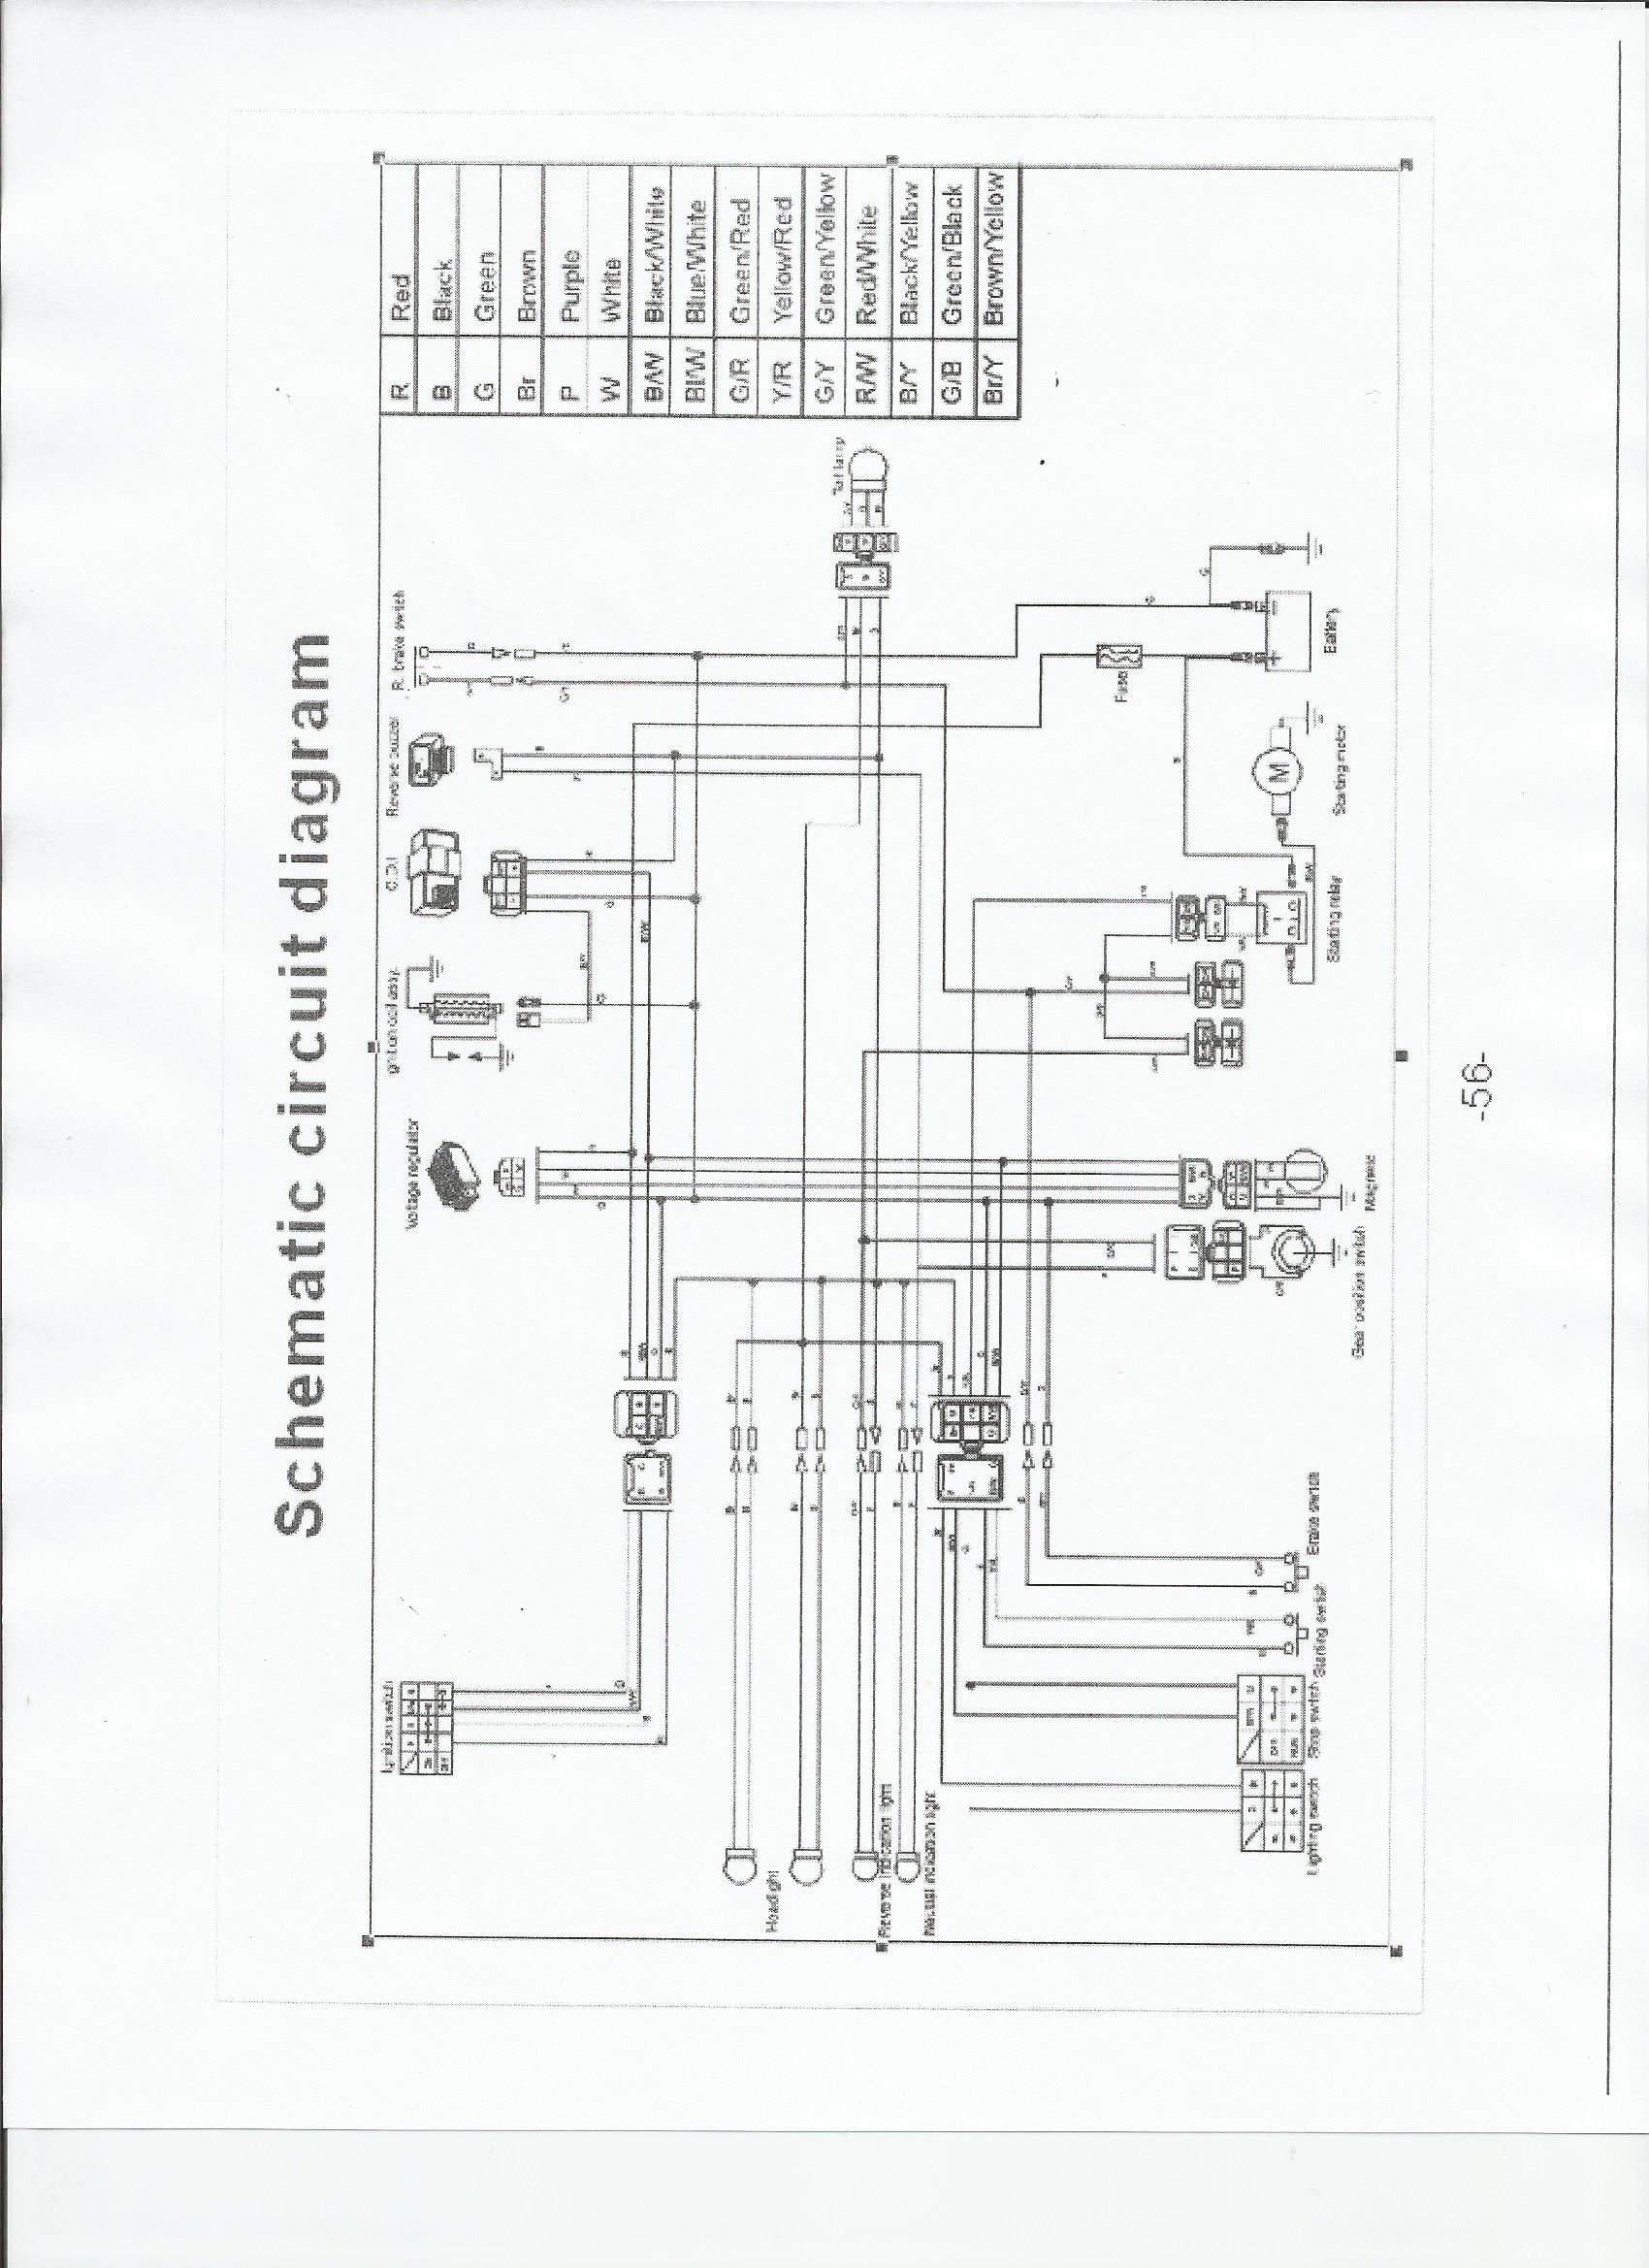 Razor Documents likewise Taotao 125cc Wiring Schematics furthermore Wiring Diagram 6 Pin Cdi in addition Razorsportsmod in addition Diagrams. on taotao 110cc wiring diagram